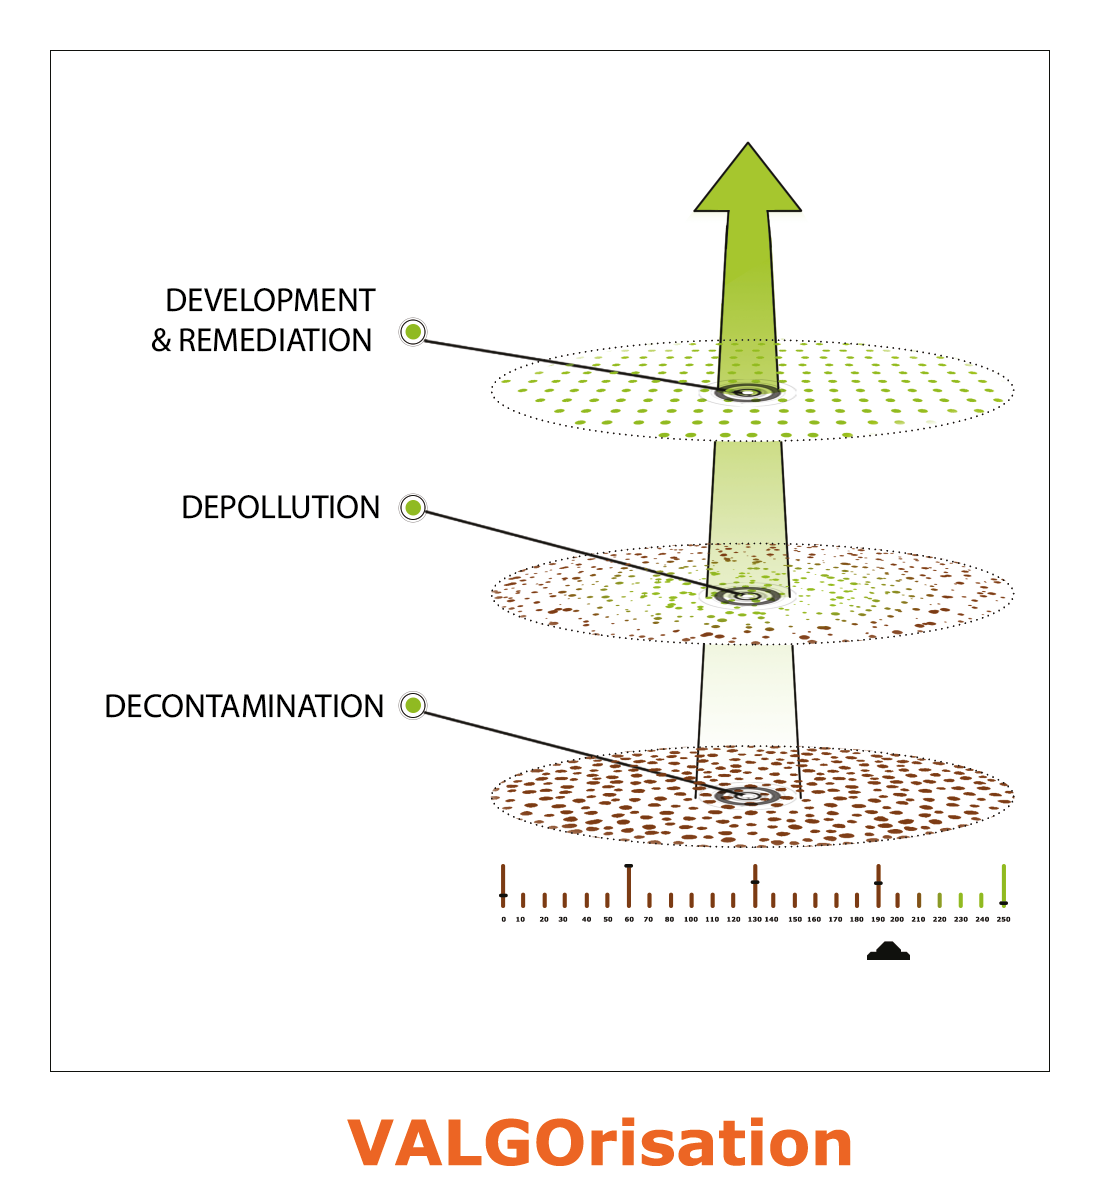 VALGO, a unique model for the depollution of polluted sites and soils